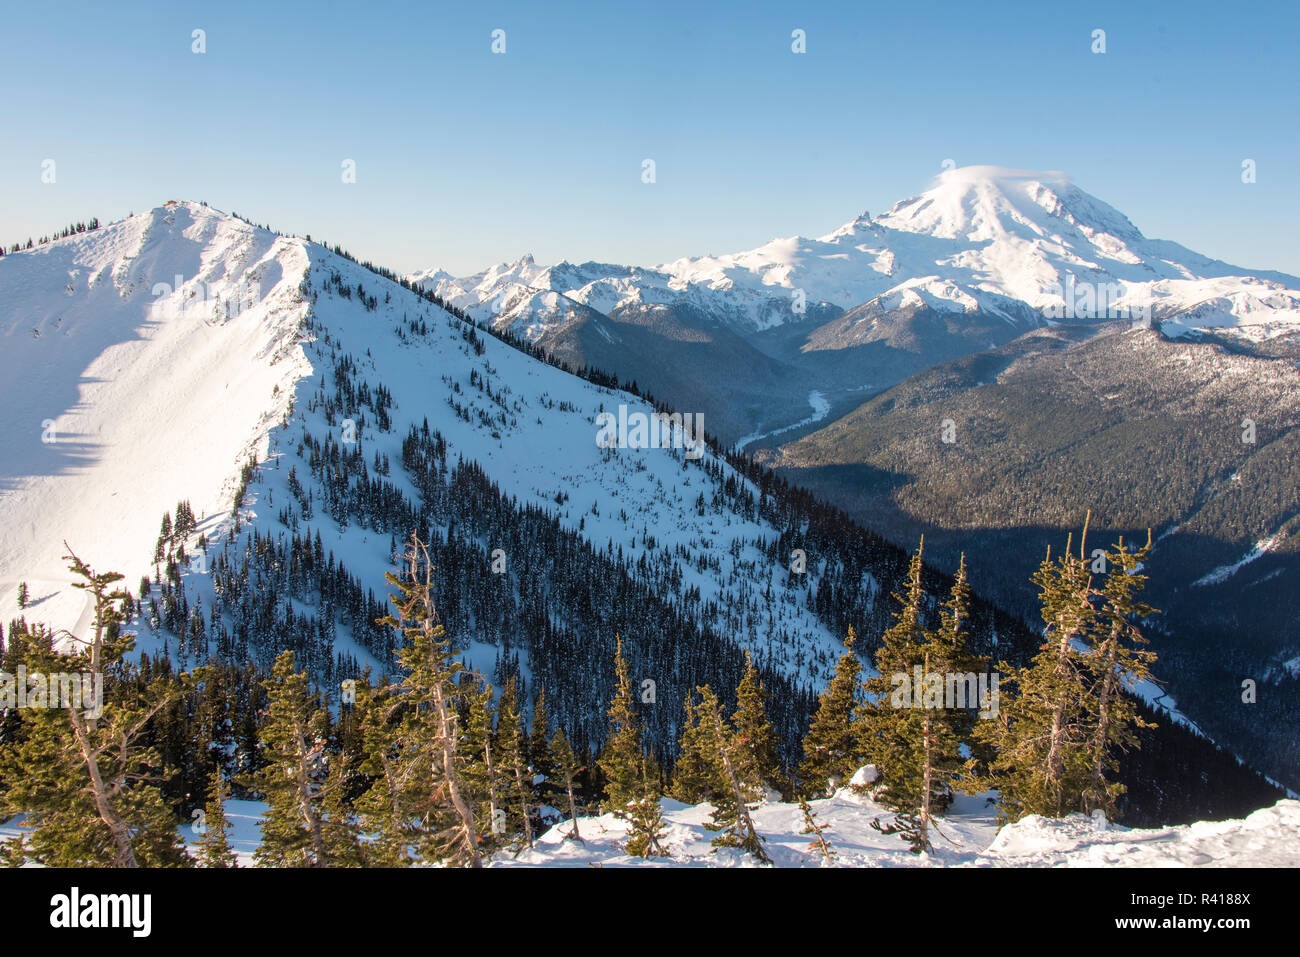 usa, washington state. crystal mountain resort. mt. rainier with cap